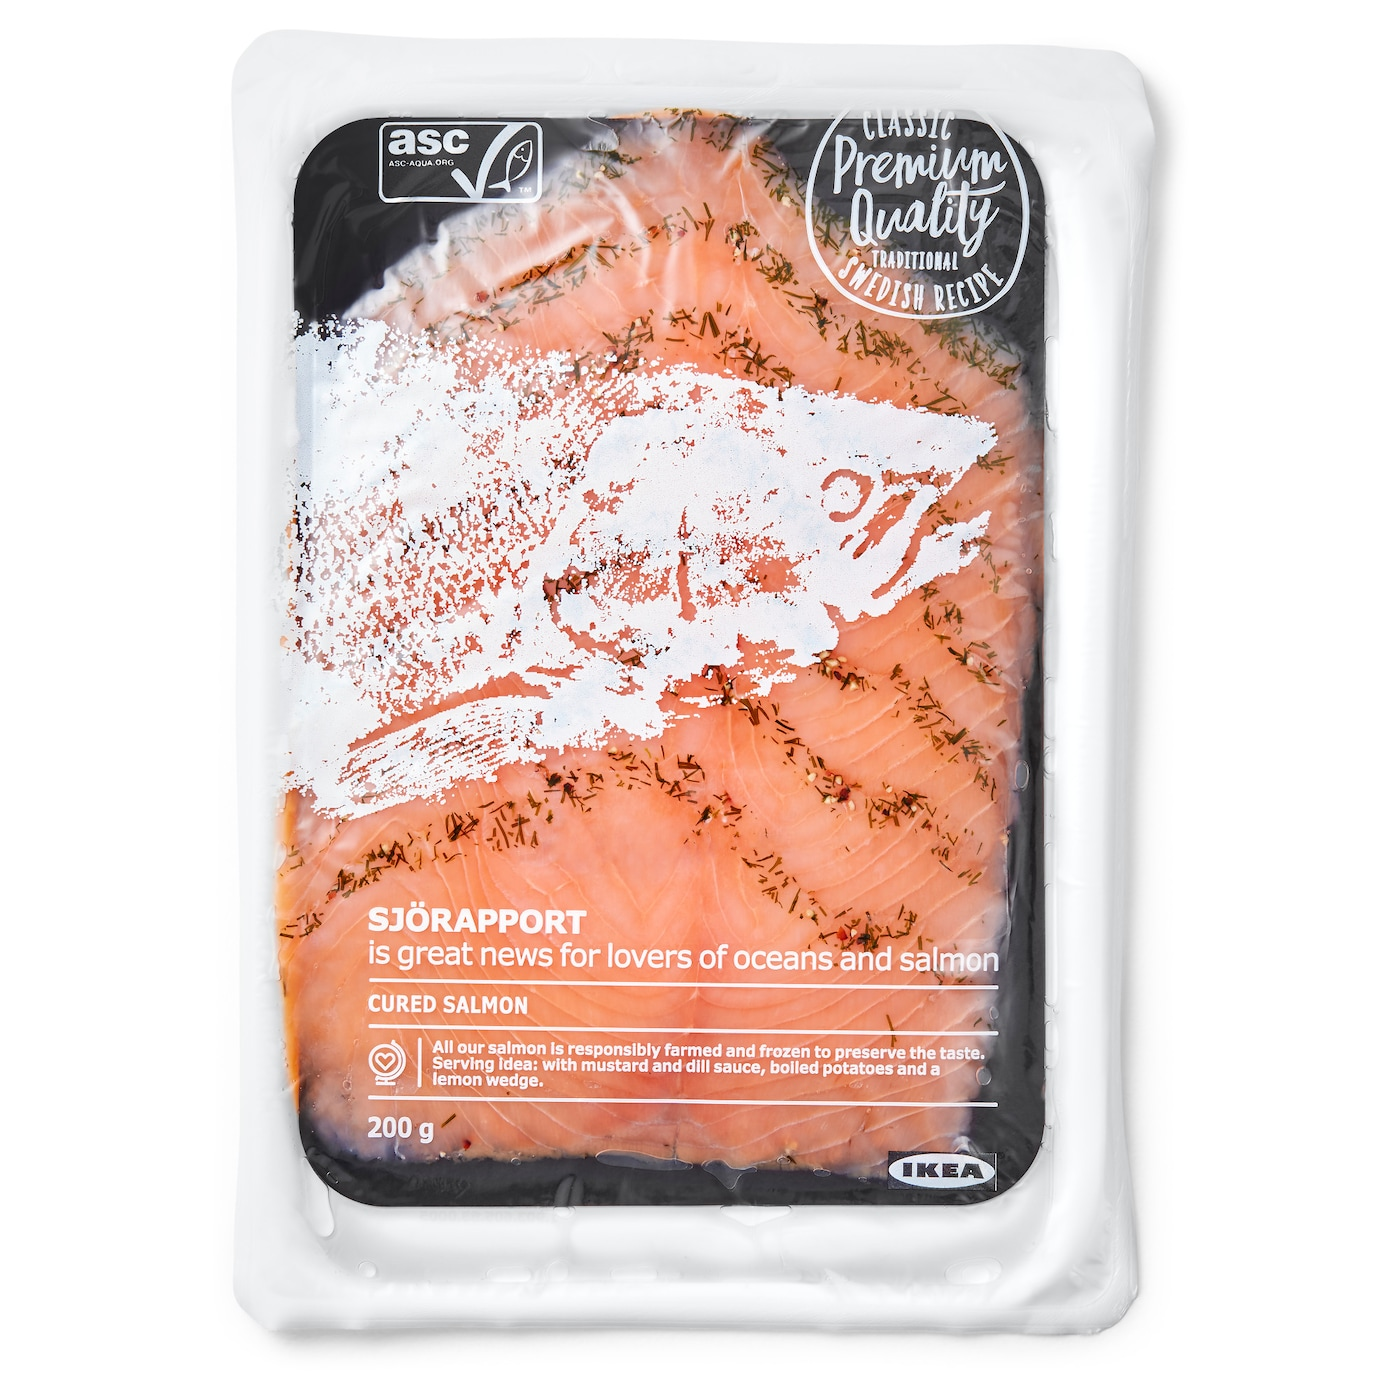 IKEA SJÖRAPPORT cured salmon Salmon is a good source of protein and Omega-3 fatty acids.